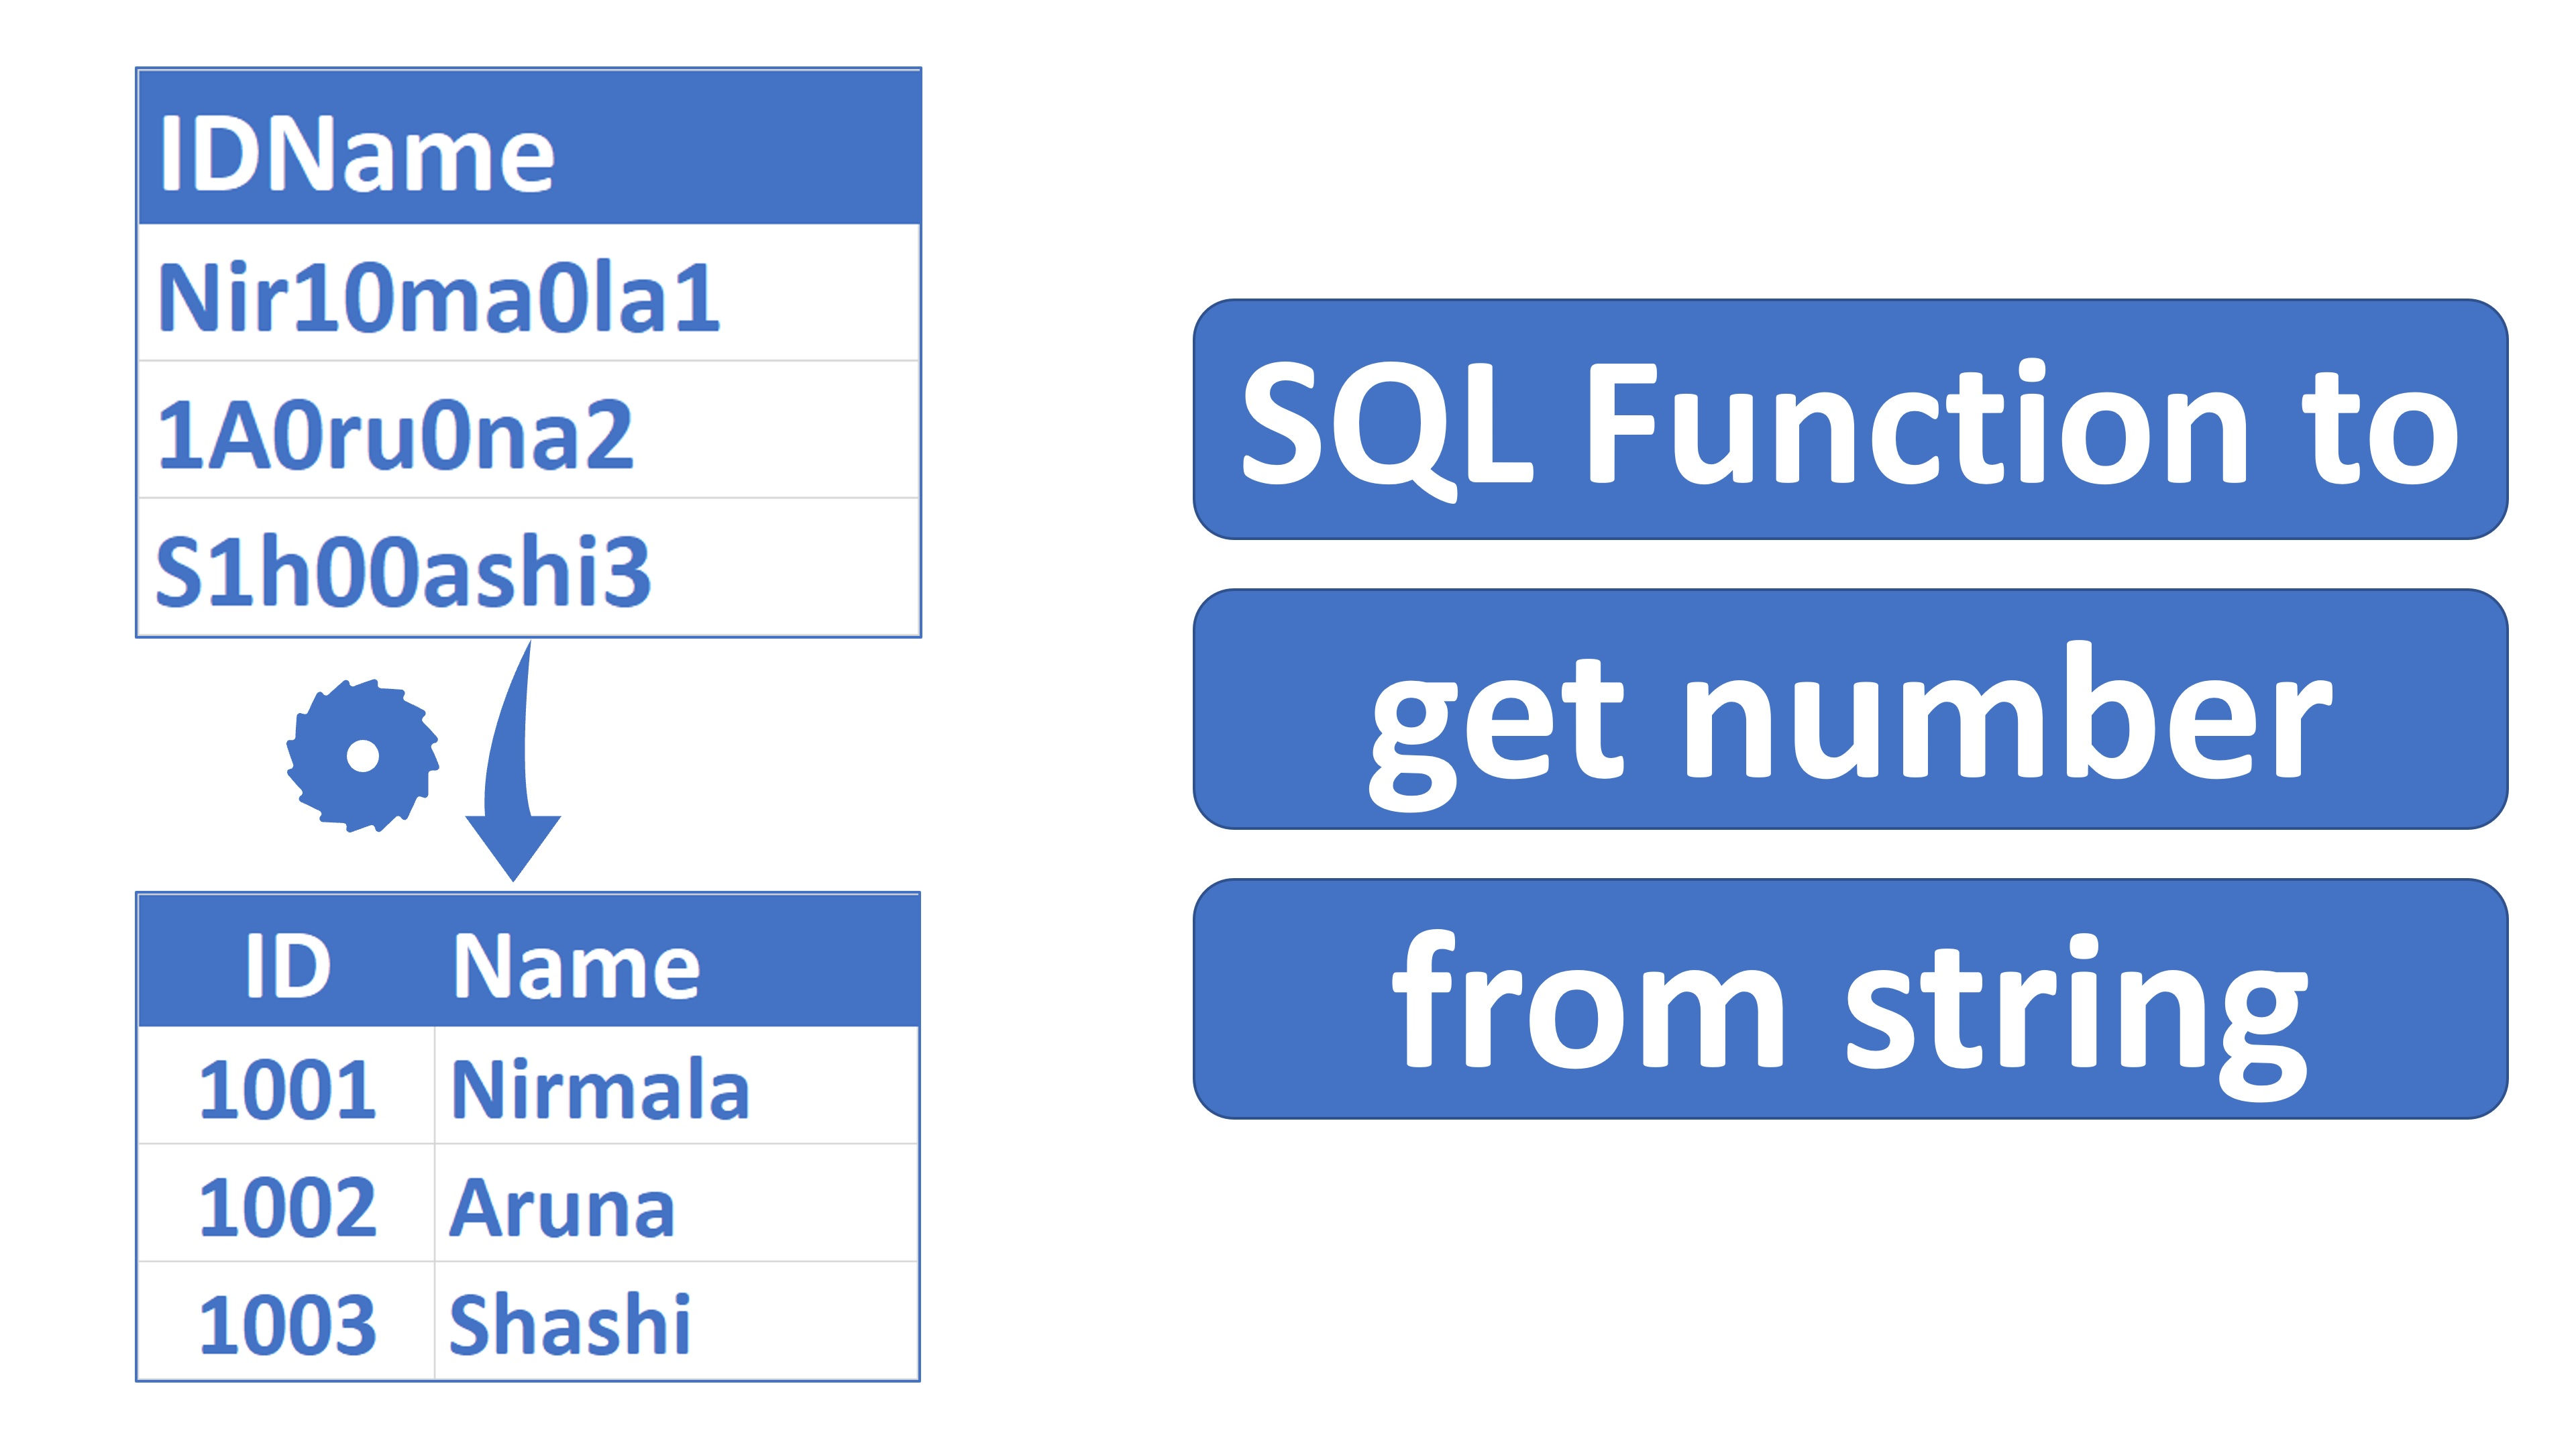 sql function to get number from string